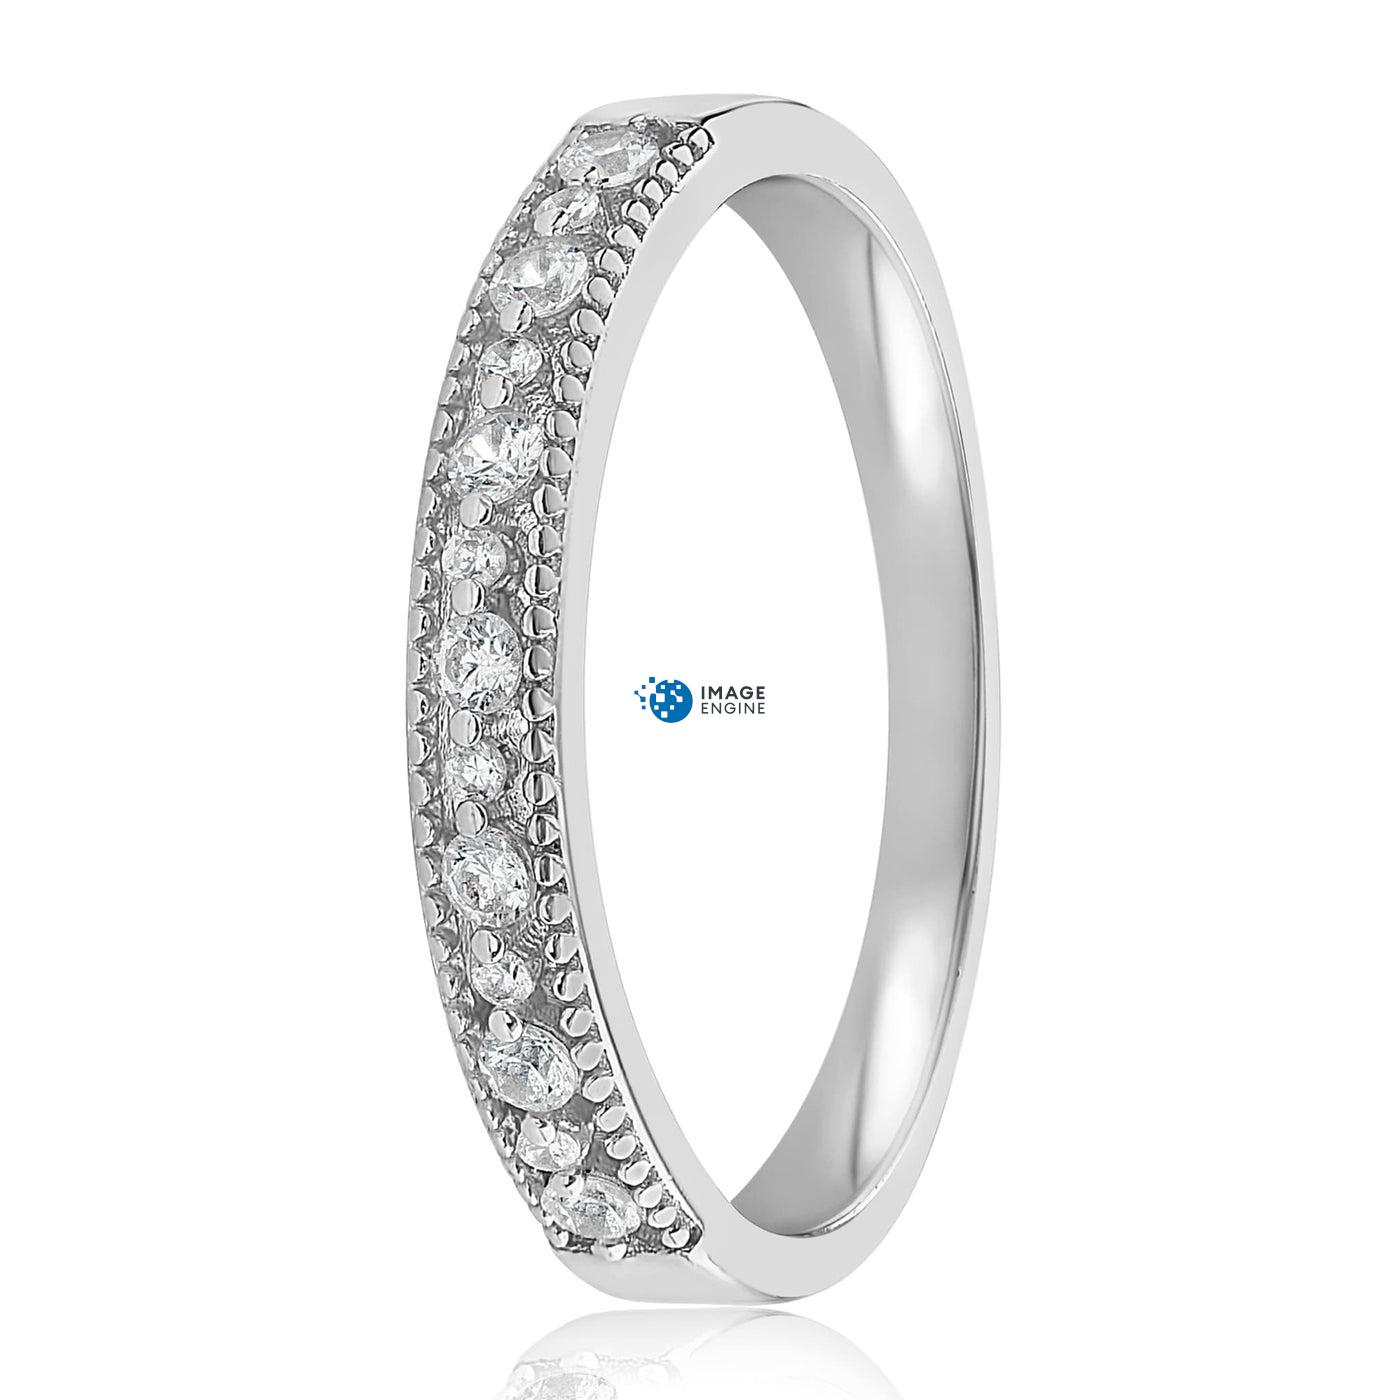 Joyce Layered Stack Ring - Side View - 925 Sterling Silver